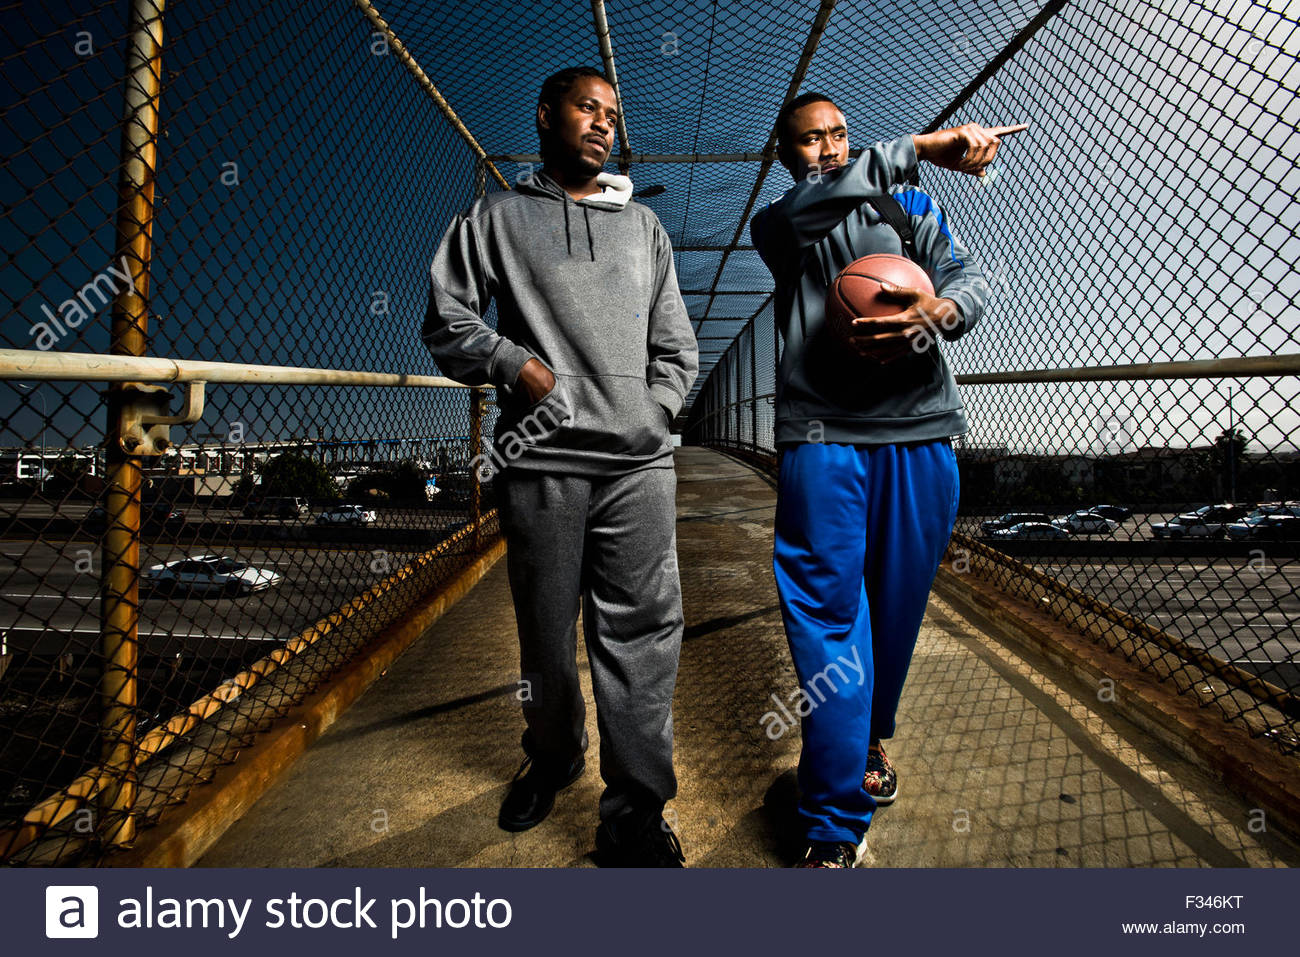 Two young men stroll with a basketball. Stock Photo